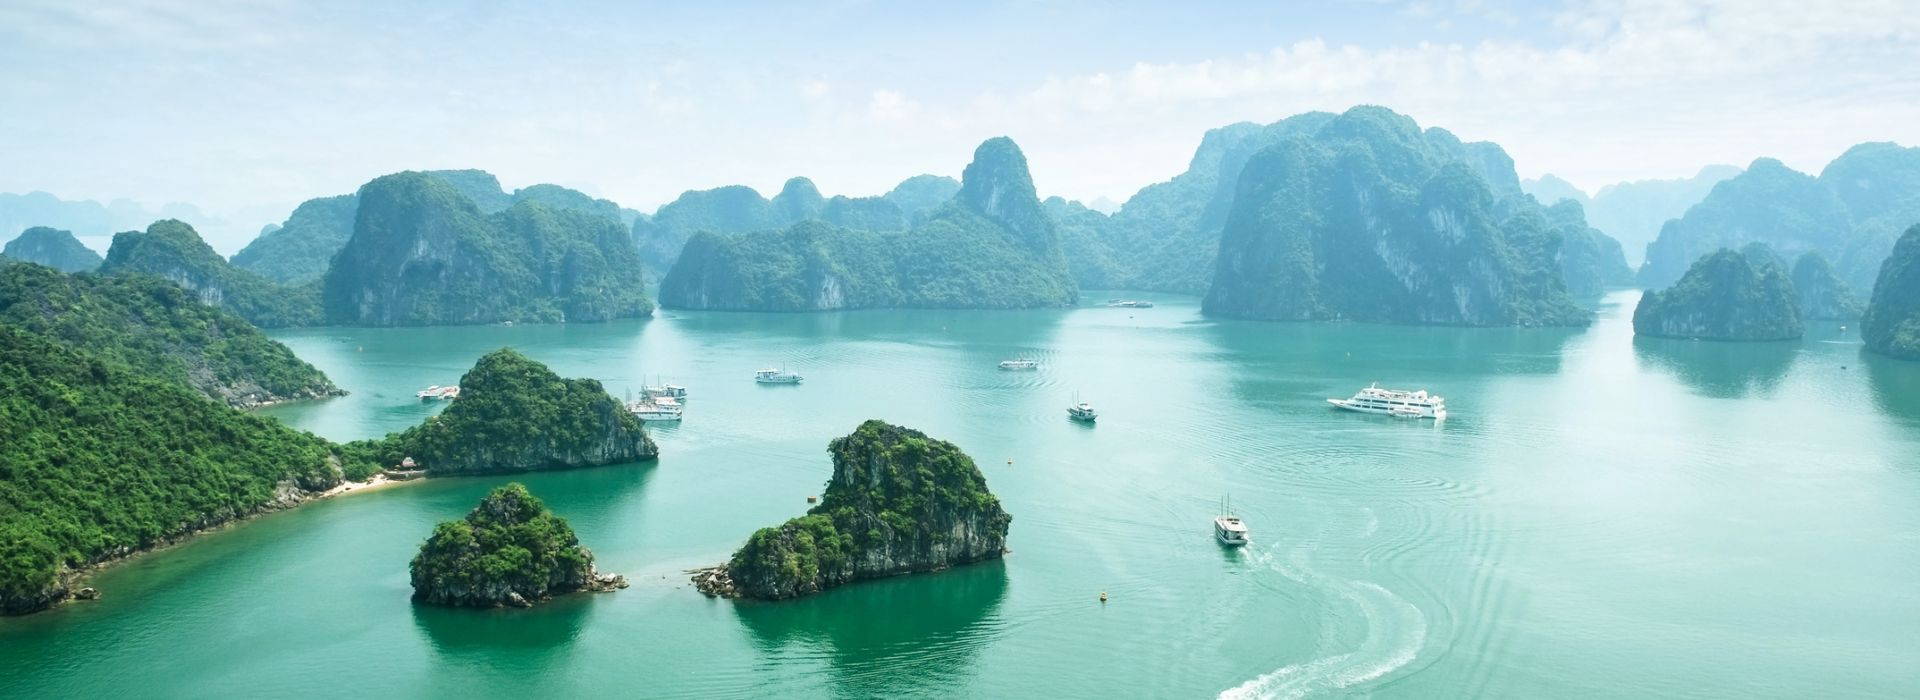 Sailing, yachting and motor boating Tours in Halong Bay